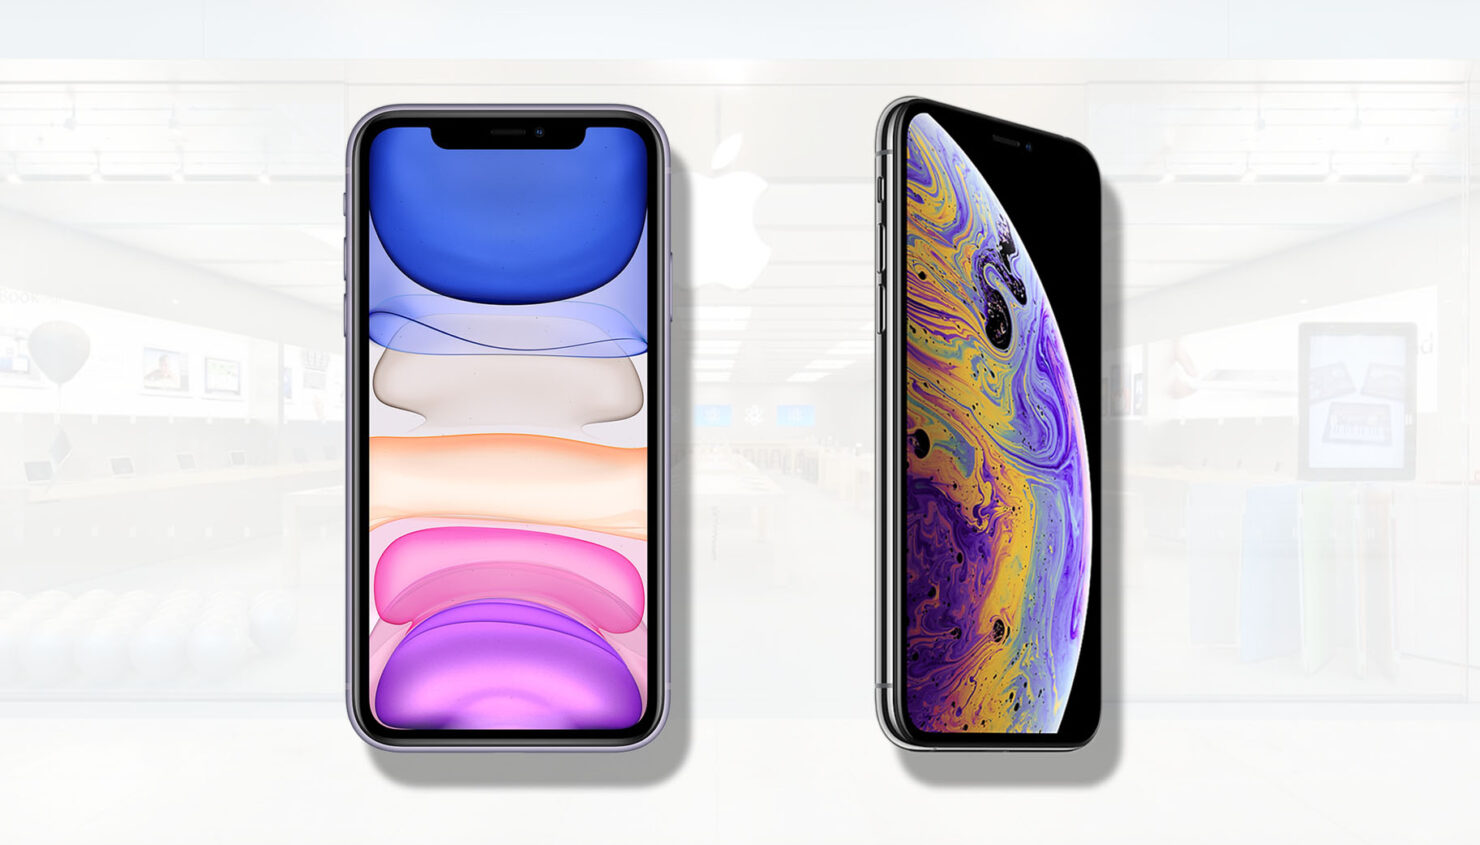 iPhone 11 or a Refurbished iPhone XS? Both Cost the Same, but Which One Should You Get?